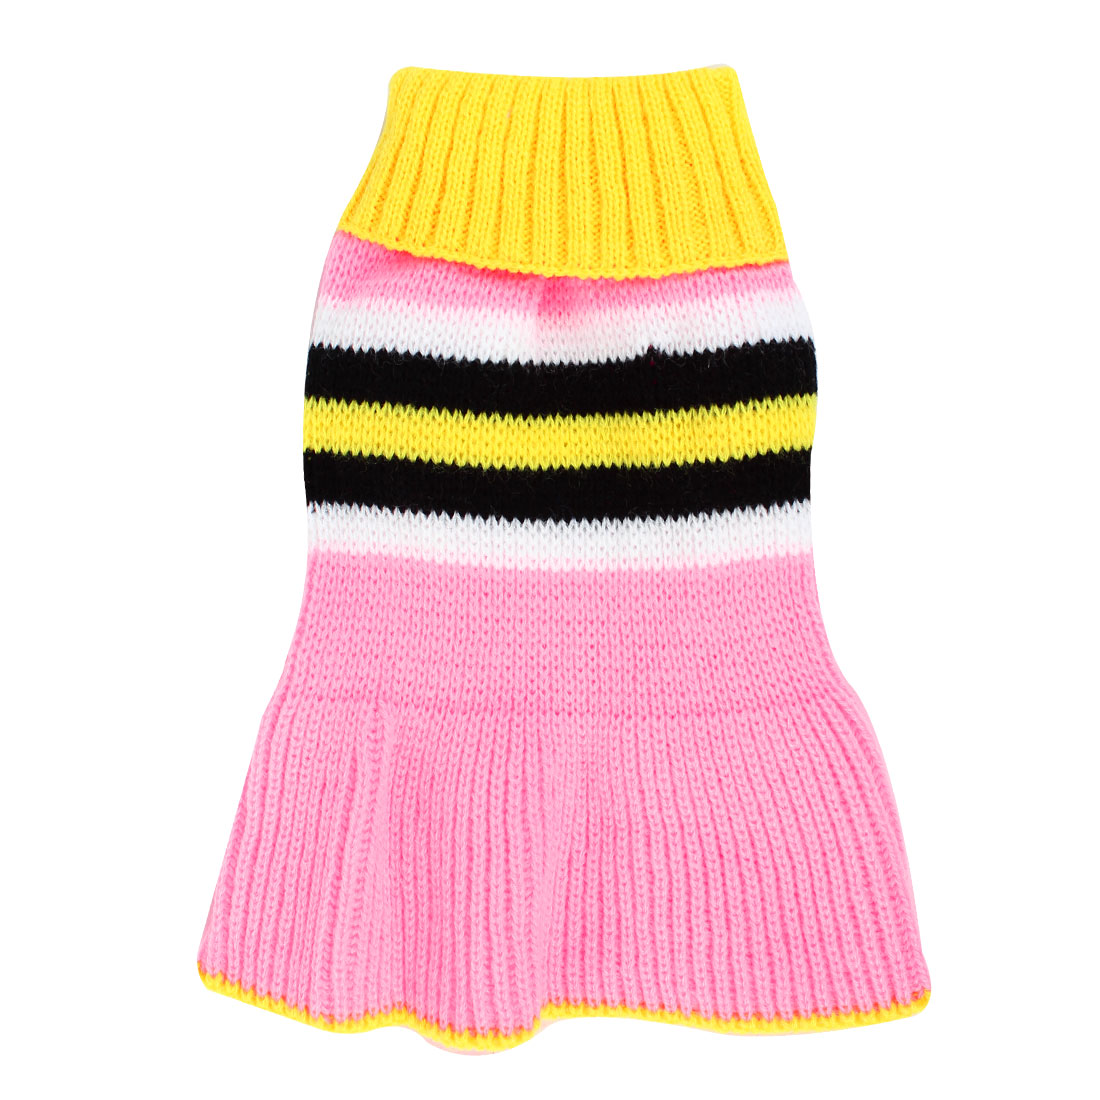 Pet Dog Yorkie Ribbed Cuff Knitwear Turtleneck Dress Apparel Sweater Yellow Size 8